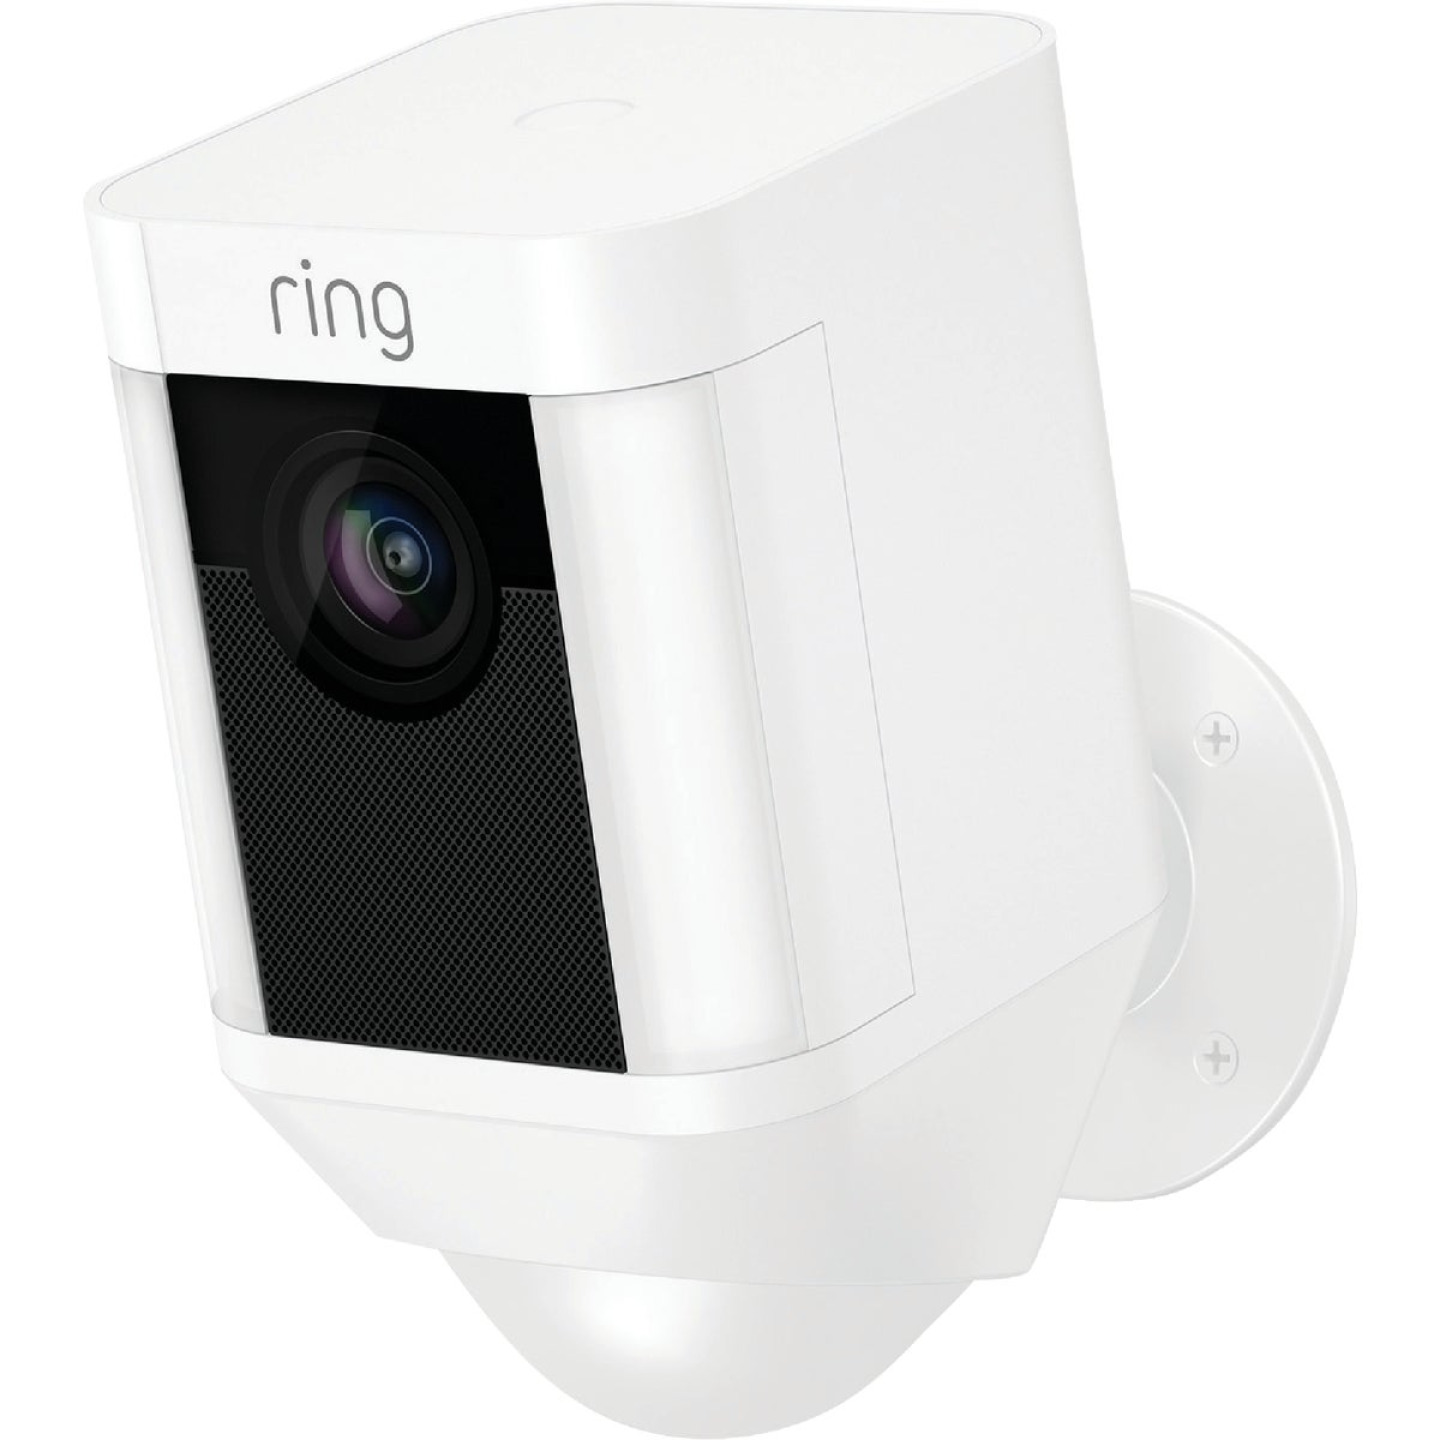 Ring Wireless Indoor/Outdoor White Security Camera with Spotlight Image 1